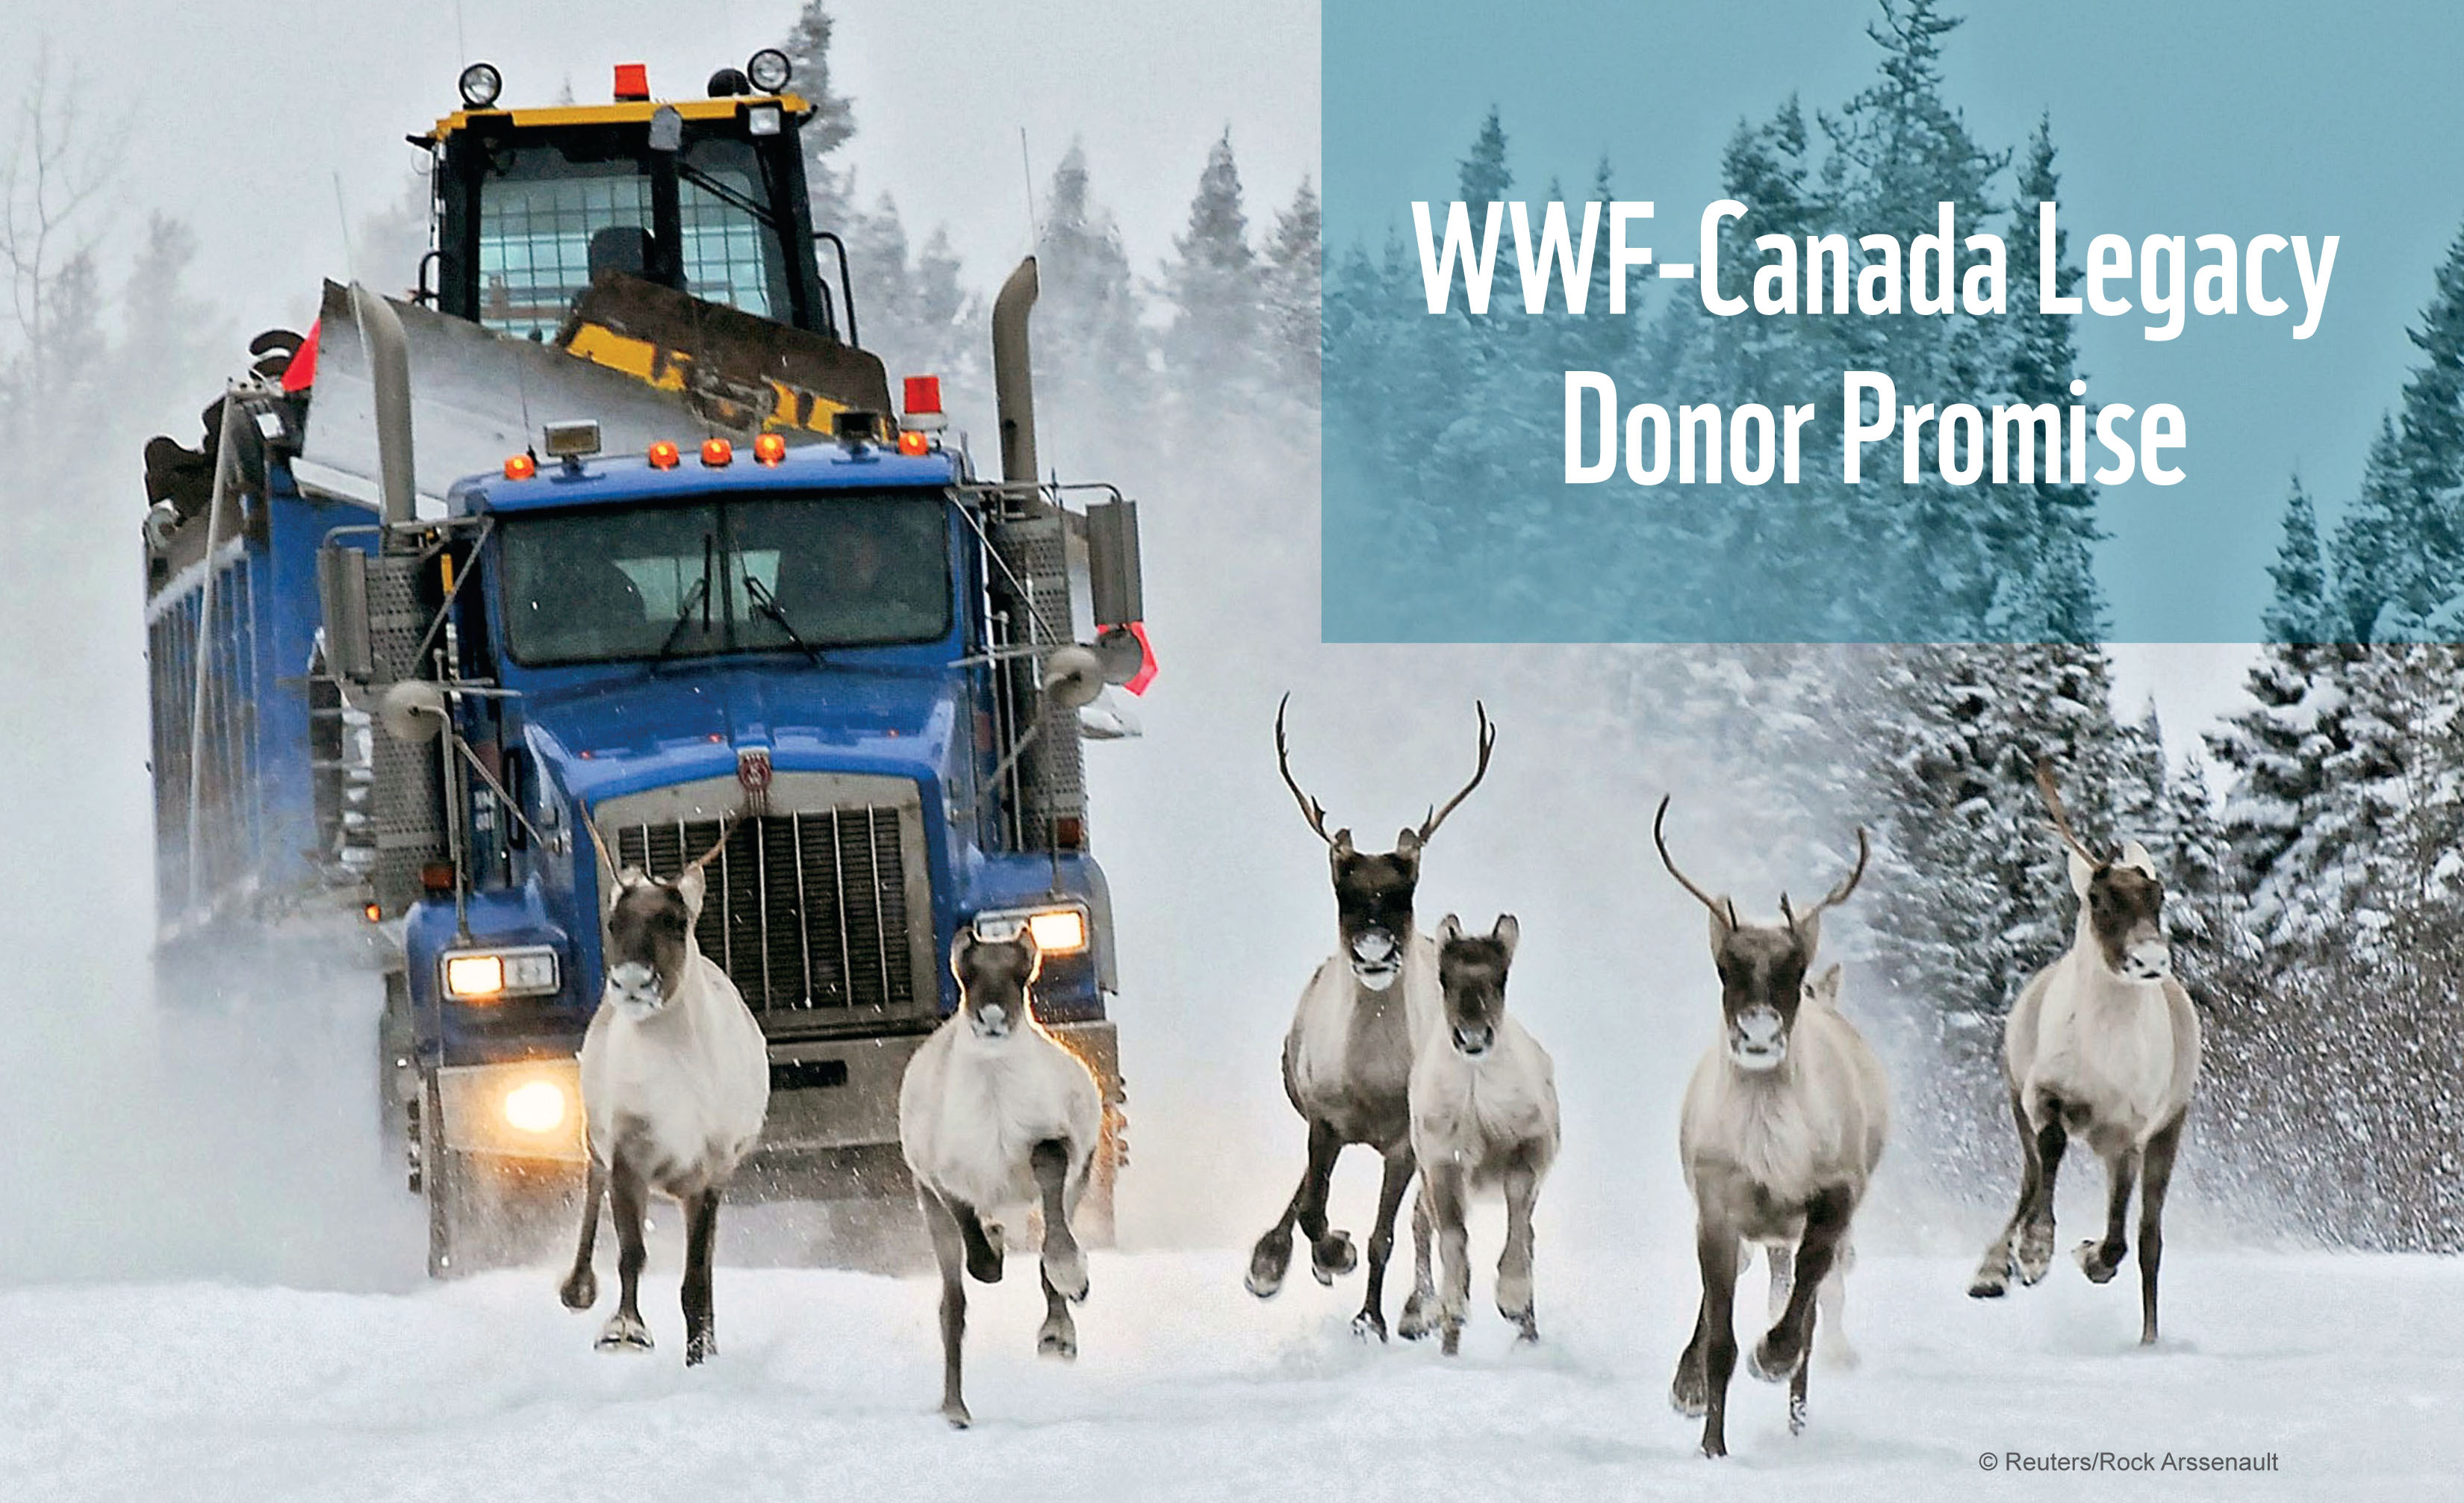 WWF-Canada Legacy Donor Promise